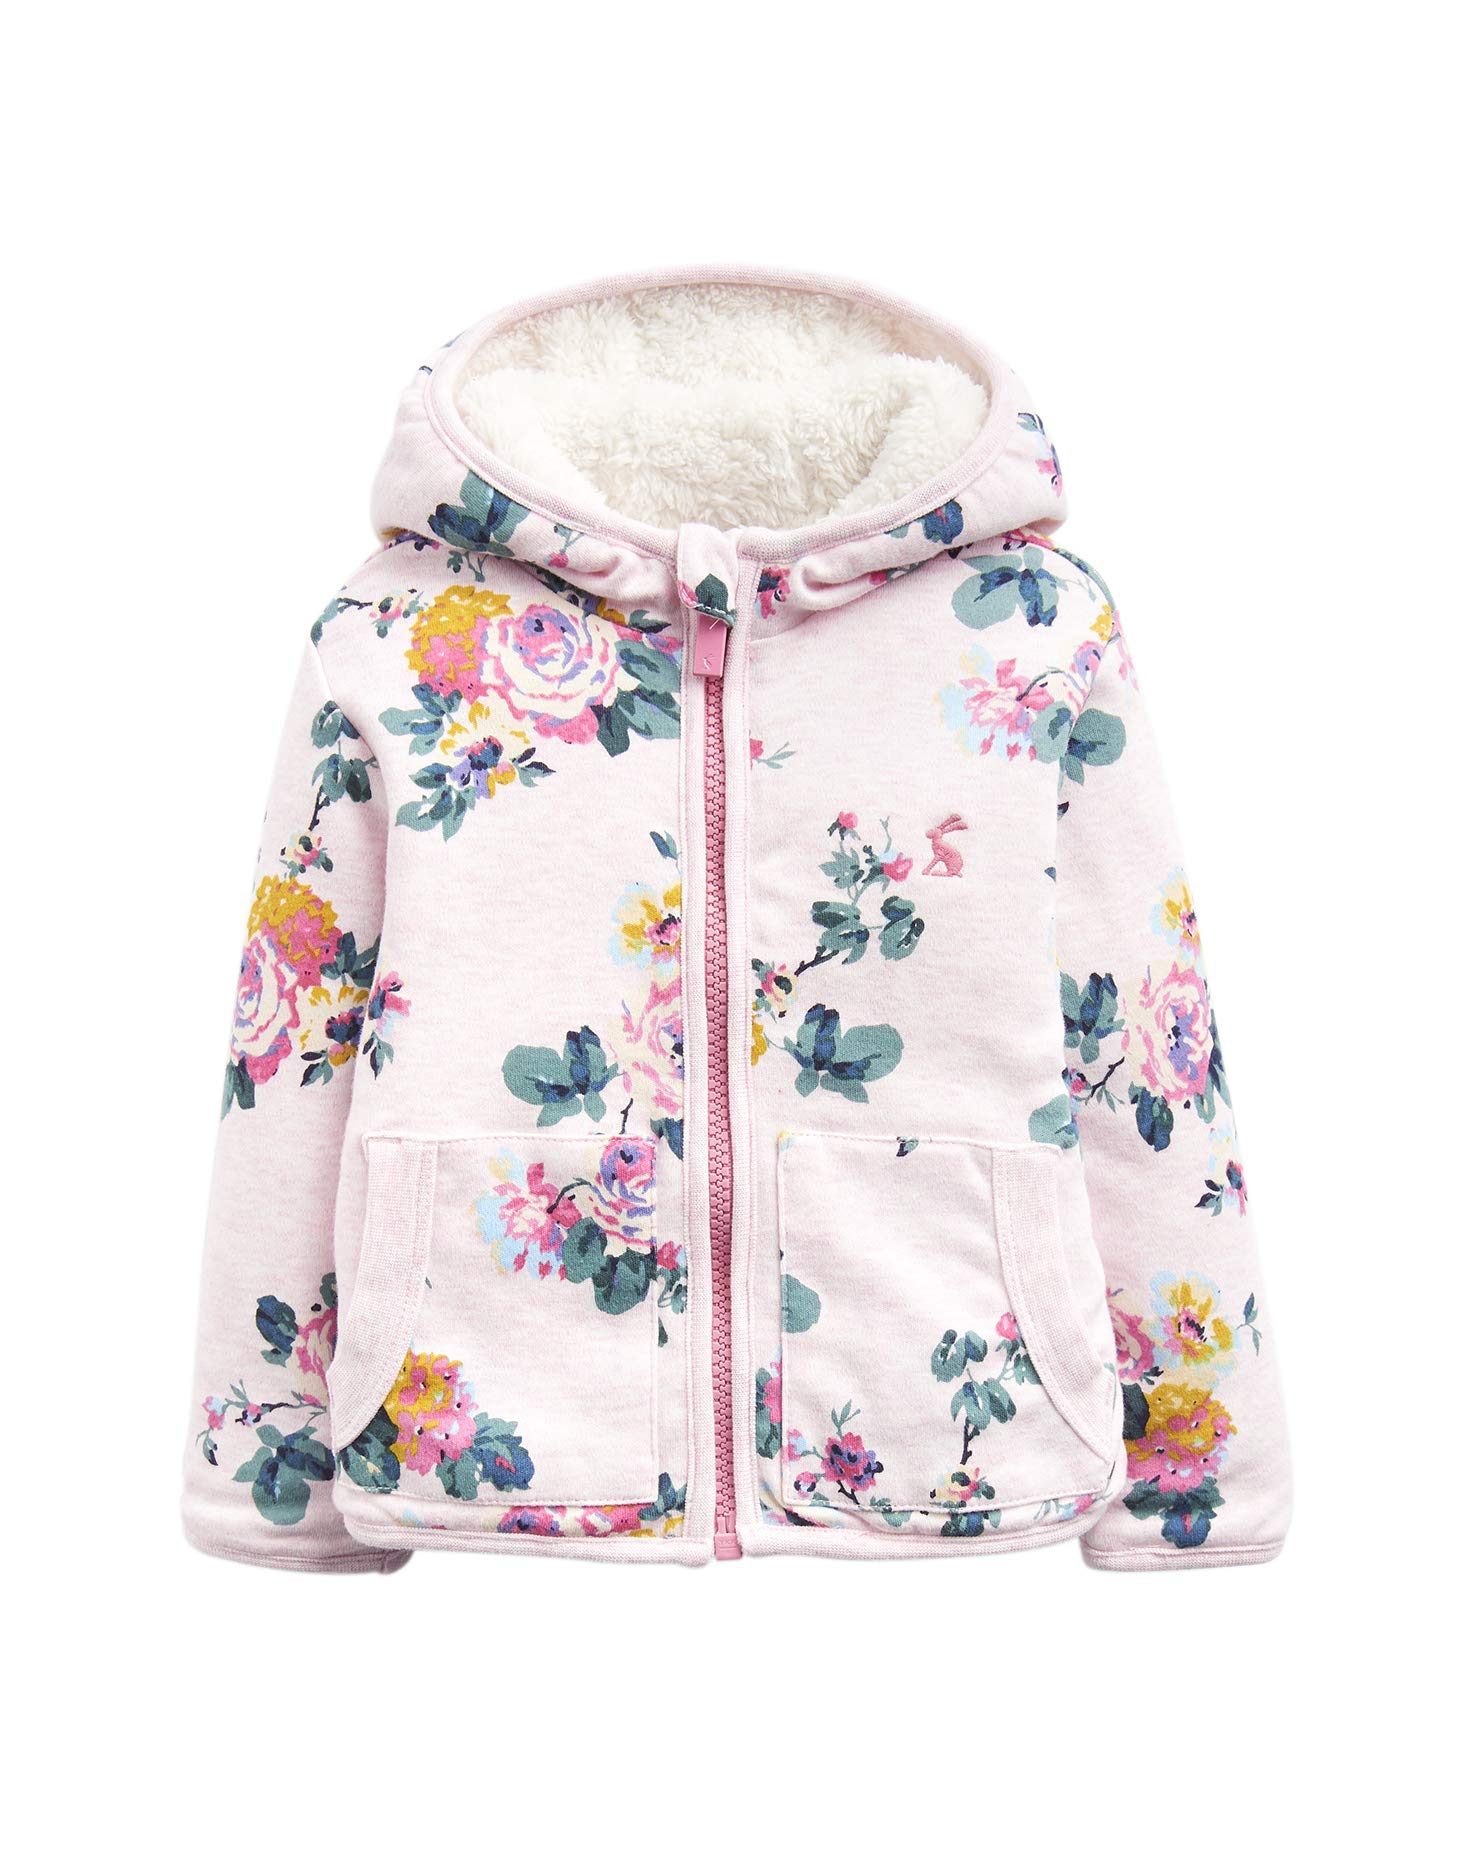 Joules Cosette Baby Reversible Sweatshirt - Pink Marl Sk - 18-24 Months / 92 cms by Joules